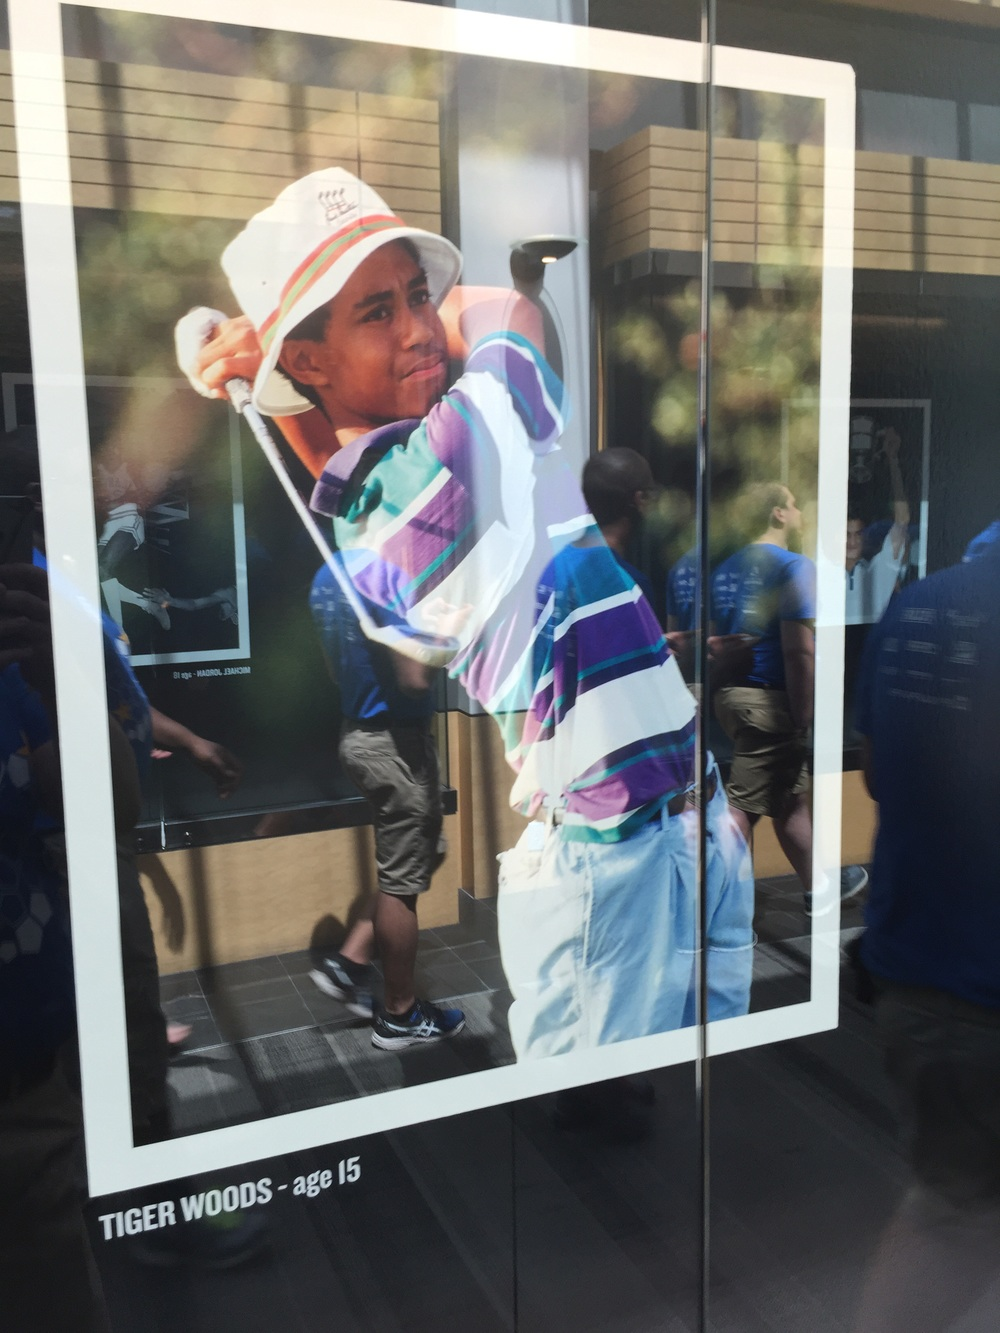 There was an exhibit of Nike Athletes when they were younger.